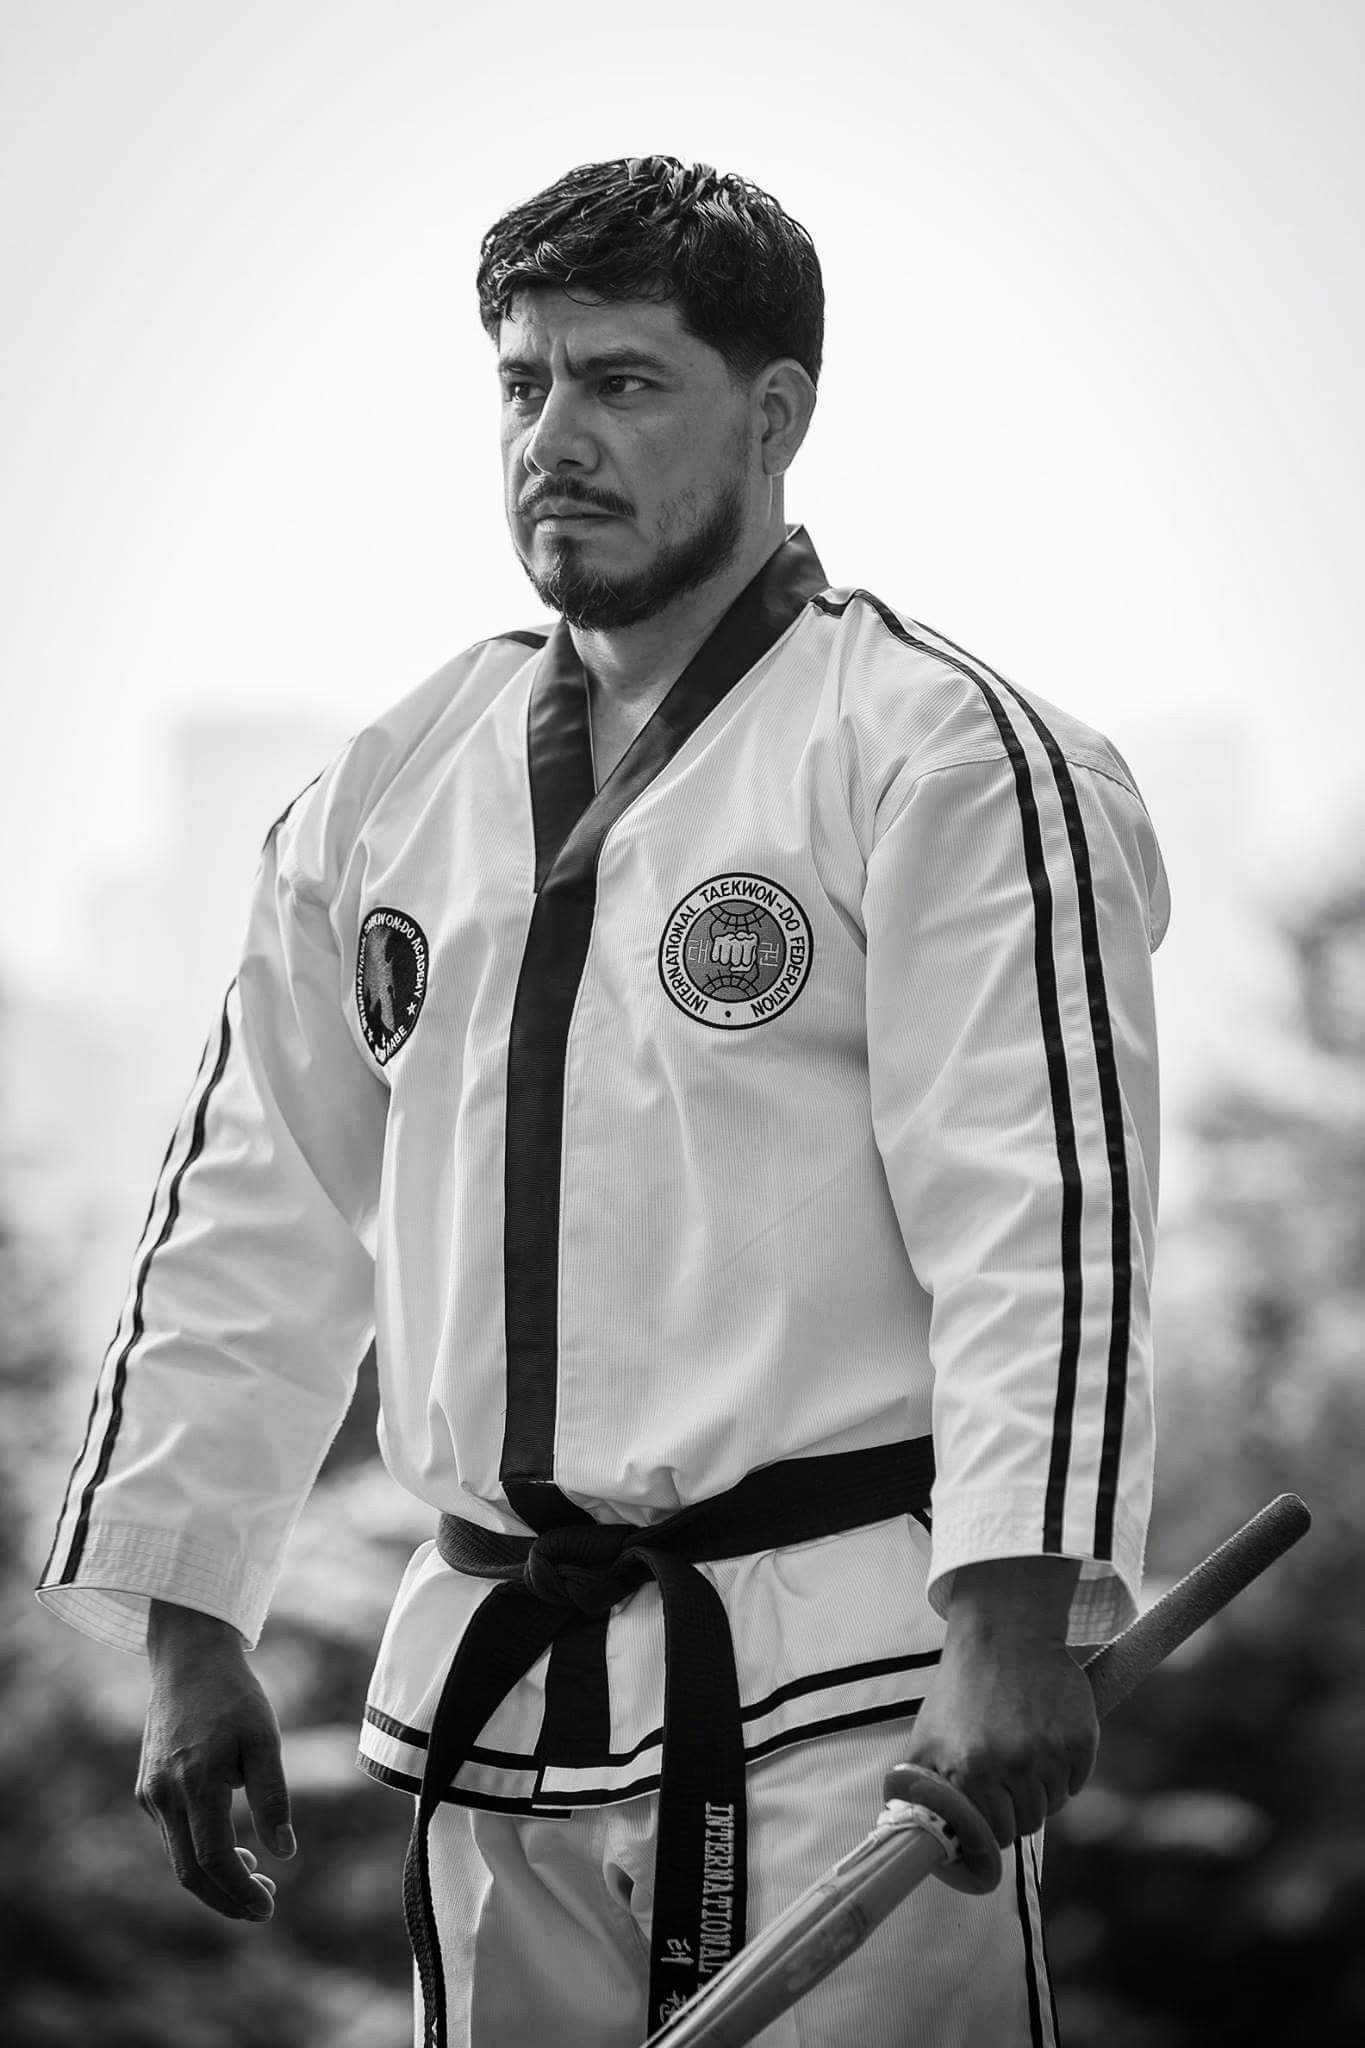 PRESS RELEASE – SAHYUNNIM VICTOR TERAN INDUCTED INTO THE AMERICAN MARTIAL ARTS 'WHO'S WHO' LEGENDS HALL OF HONORS